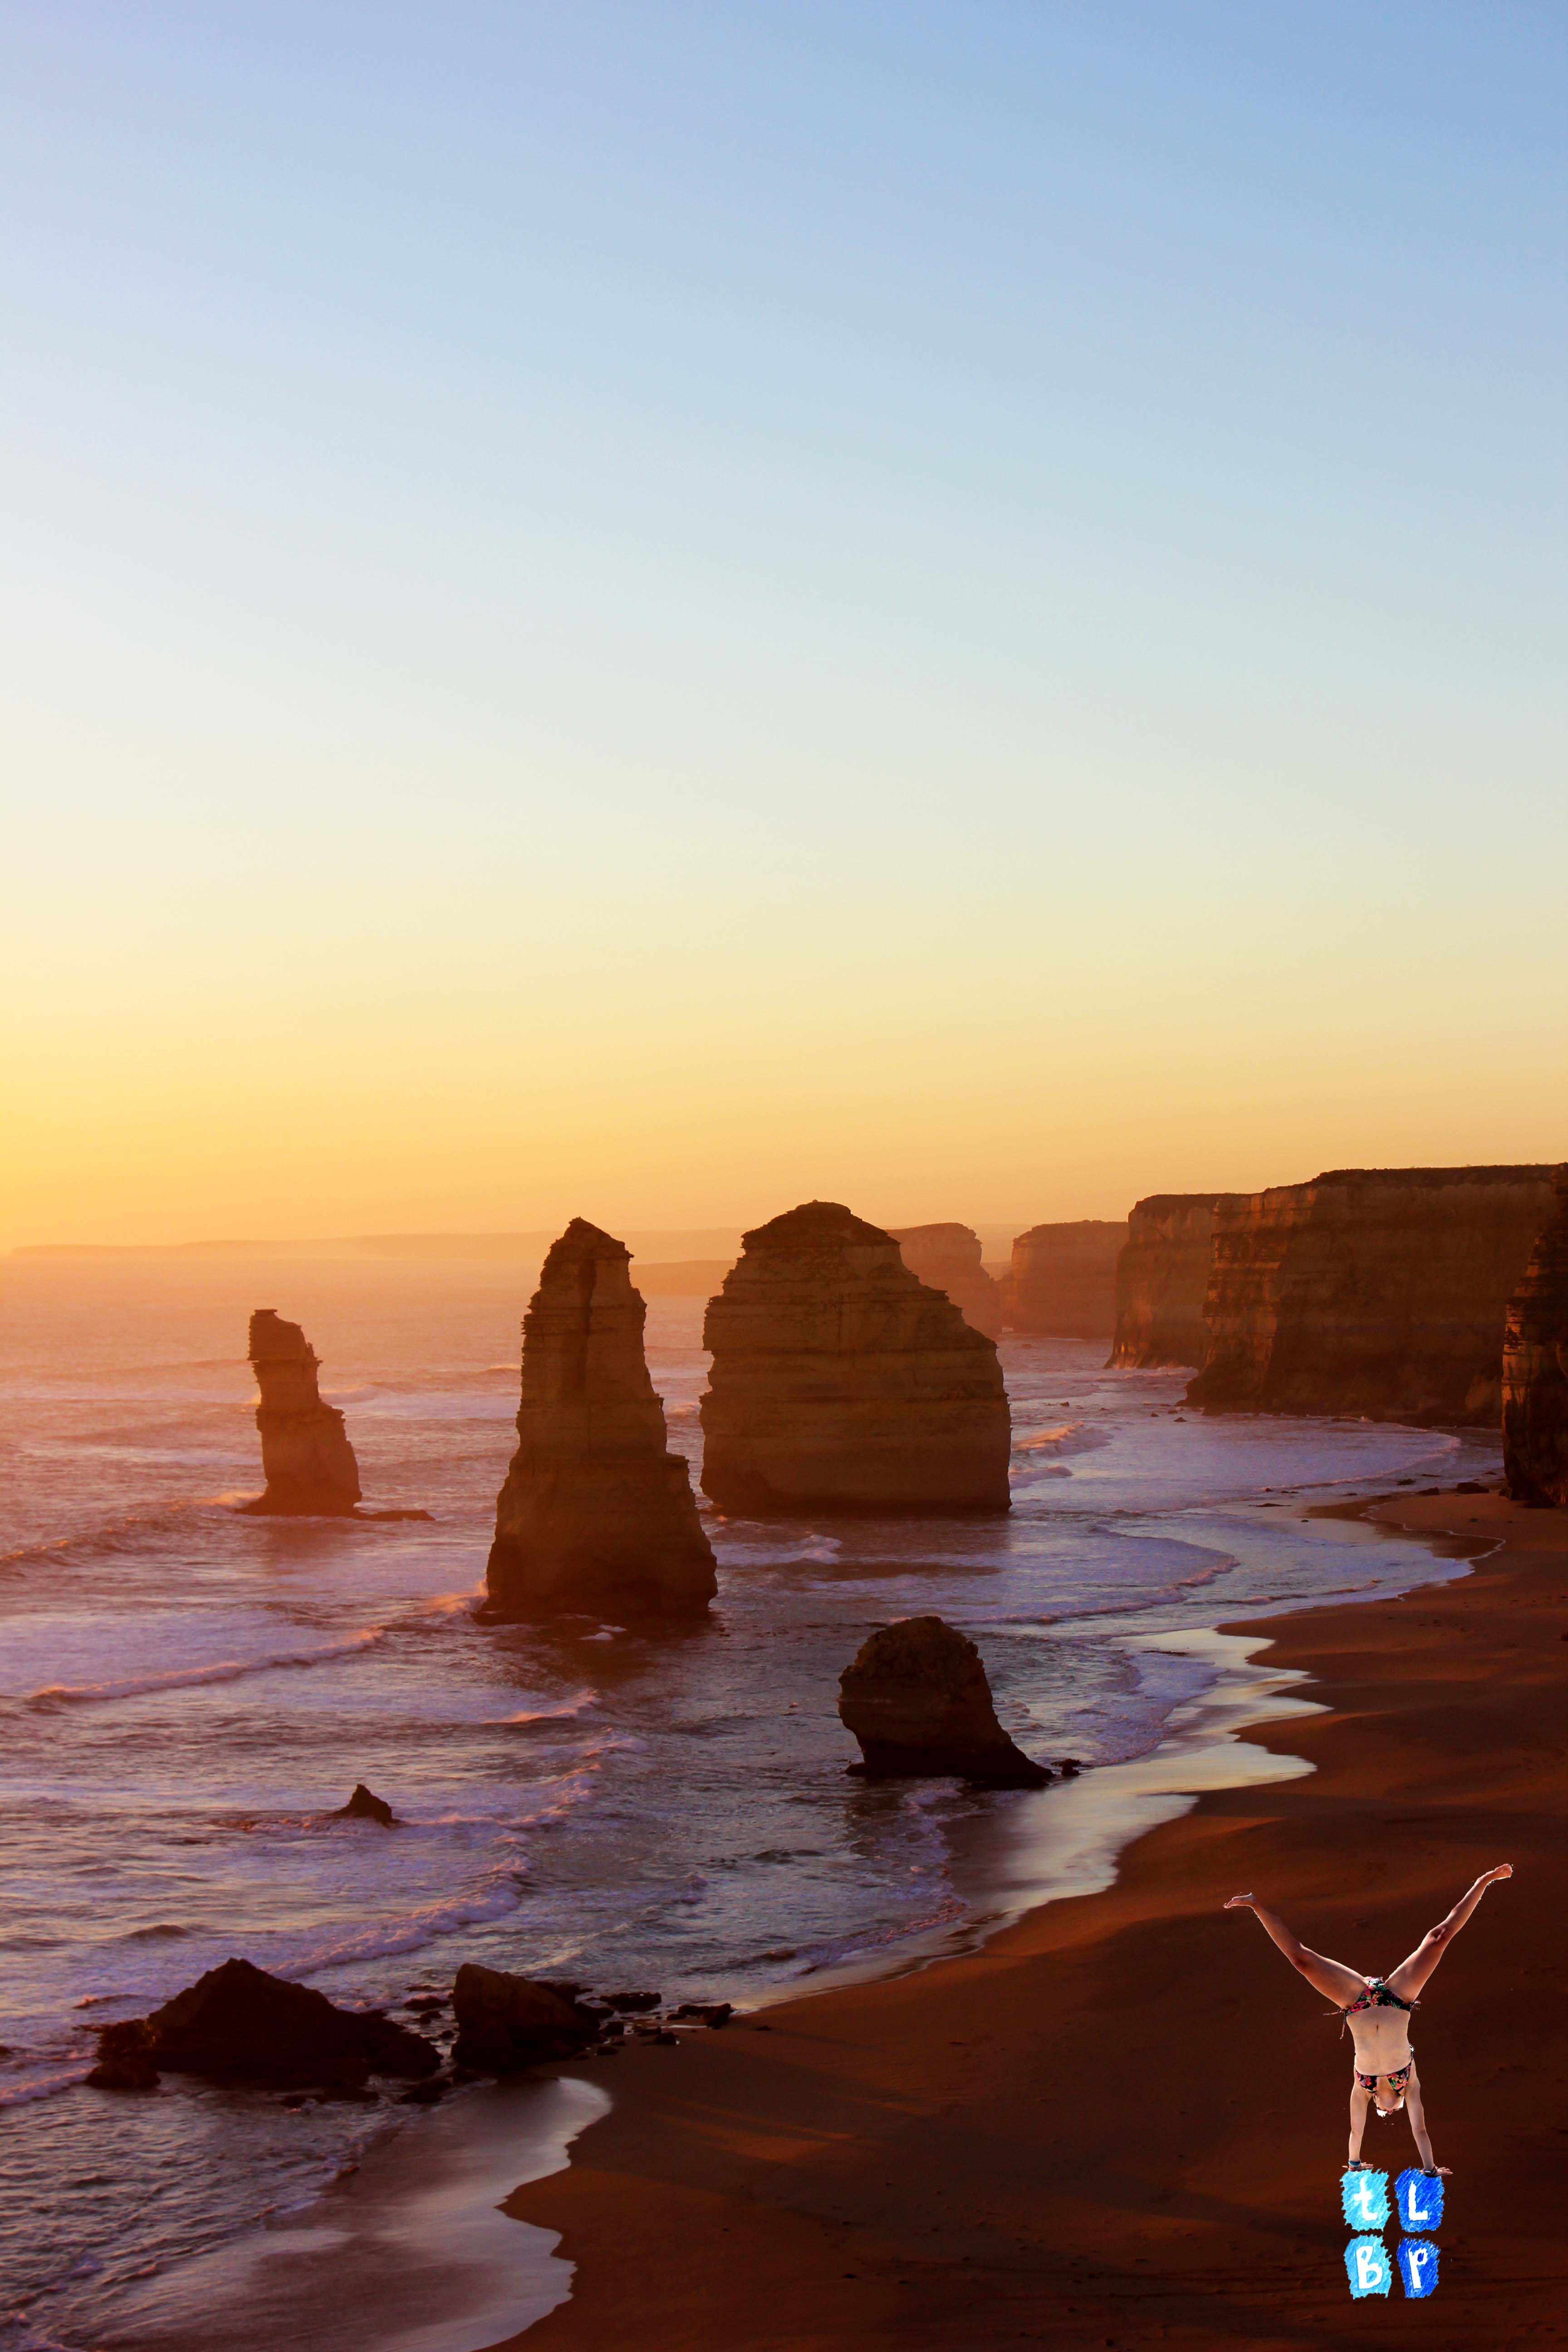 Sunset at the 12 Apostles - Photo Essay - The Little